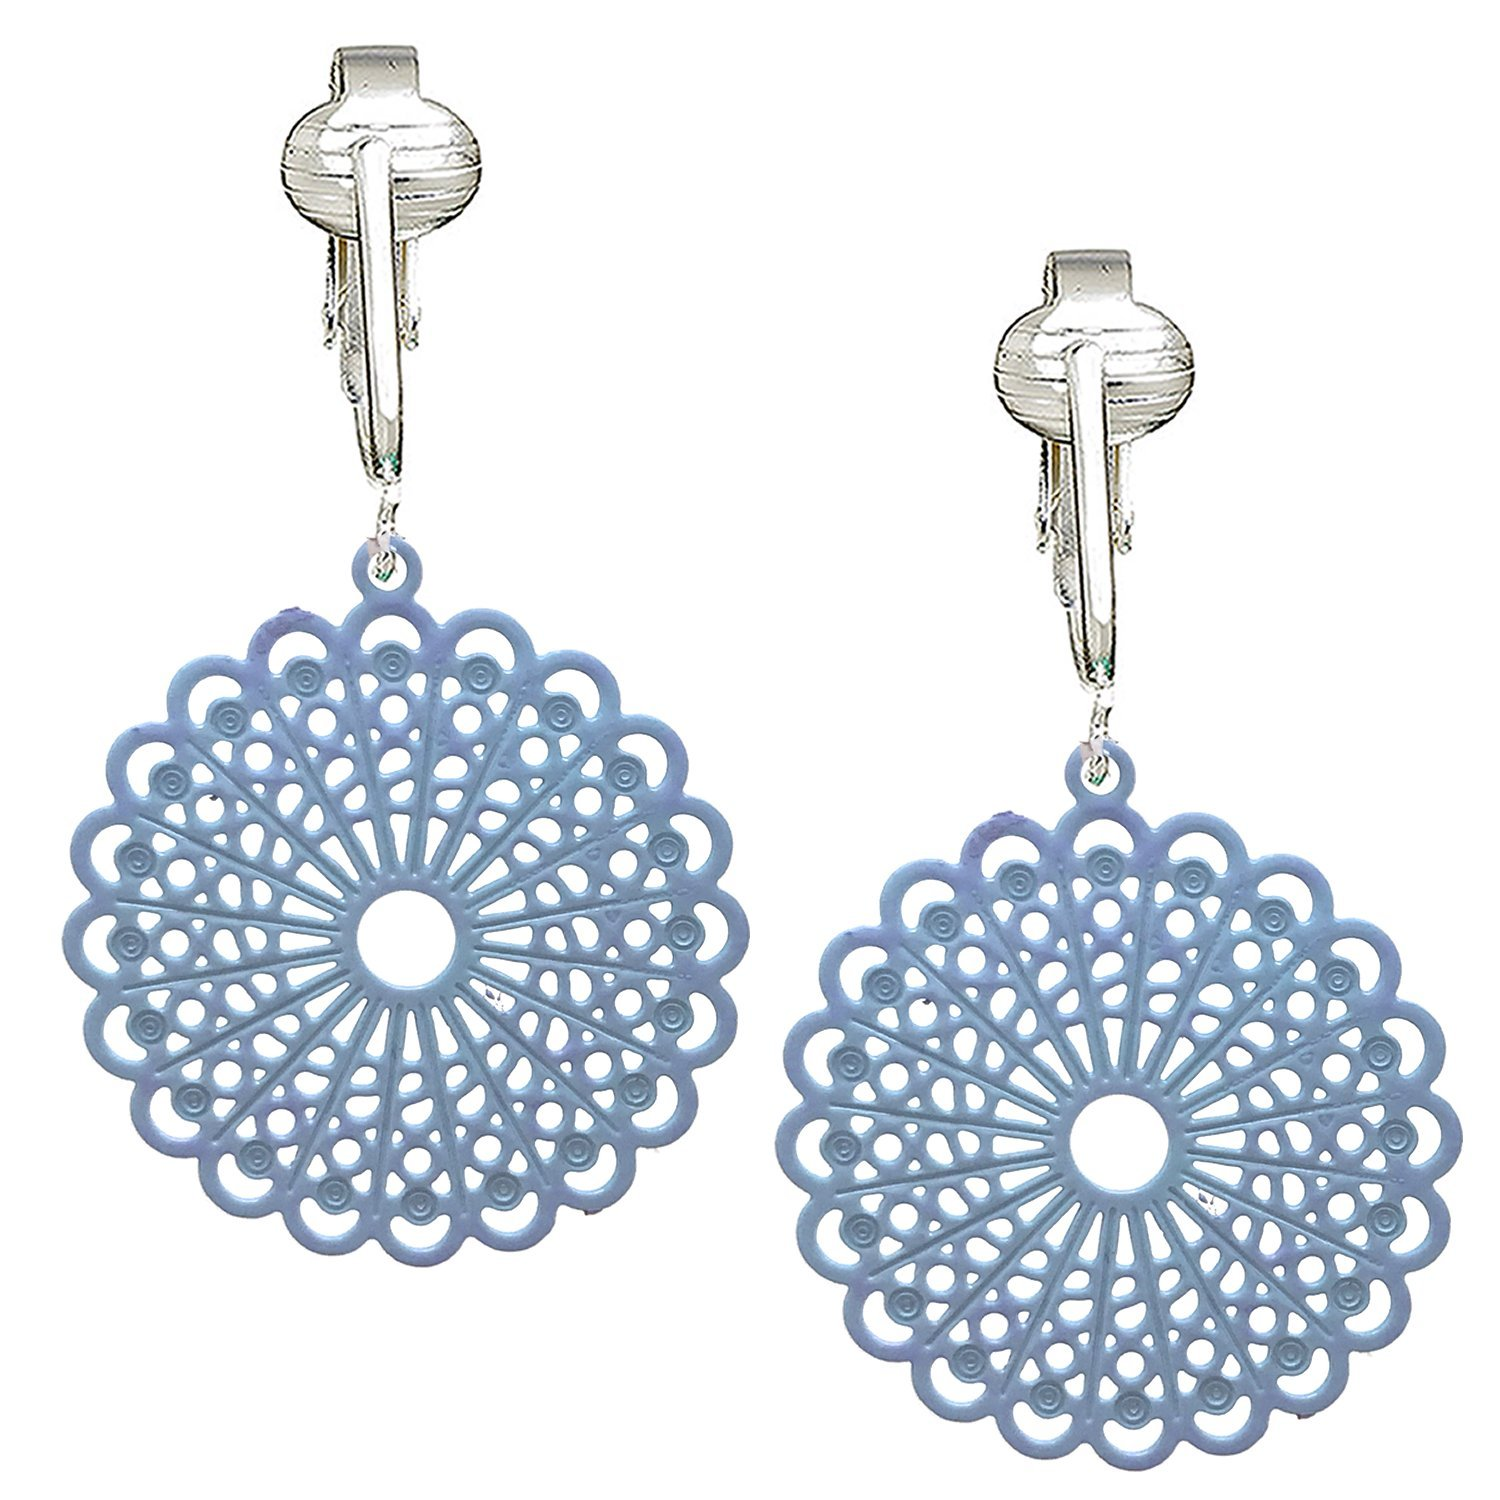 Darling Victorian Filigree Clip On Earrings for Women & Girls Clip-ons, Lacy Rounds, Flowers & Dragonfly Clip Earring Shop 0H5044